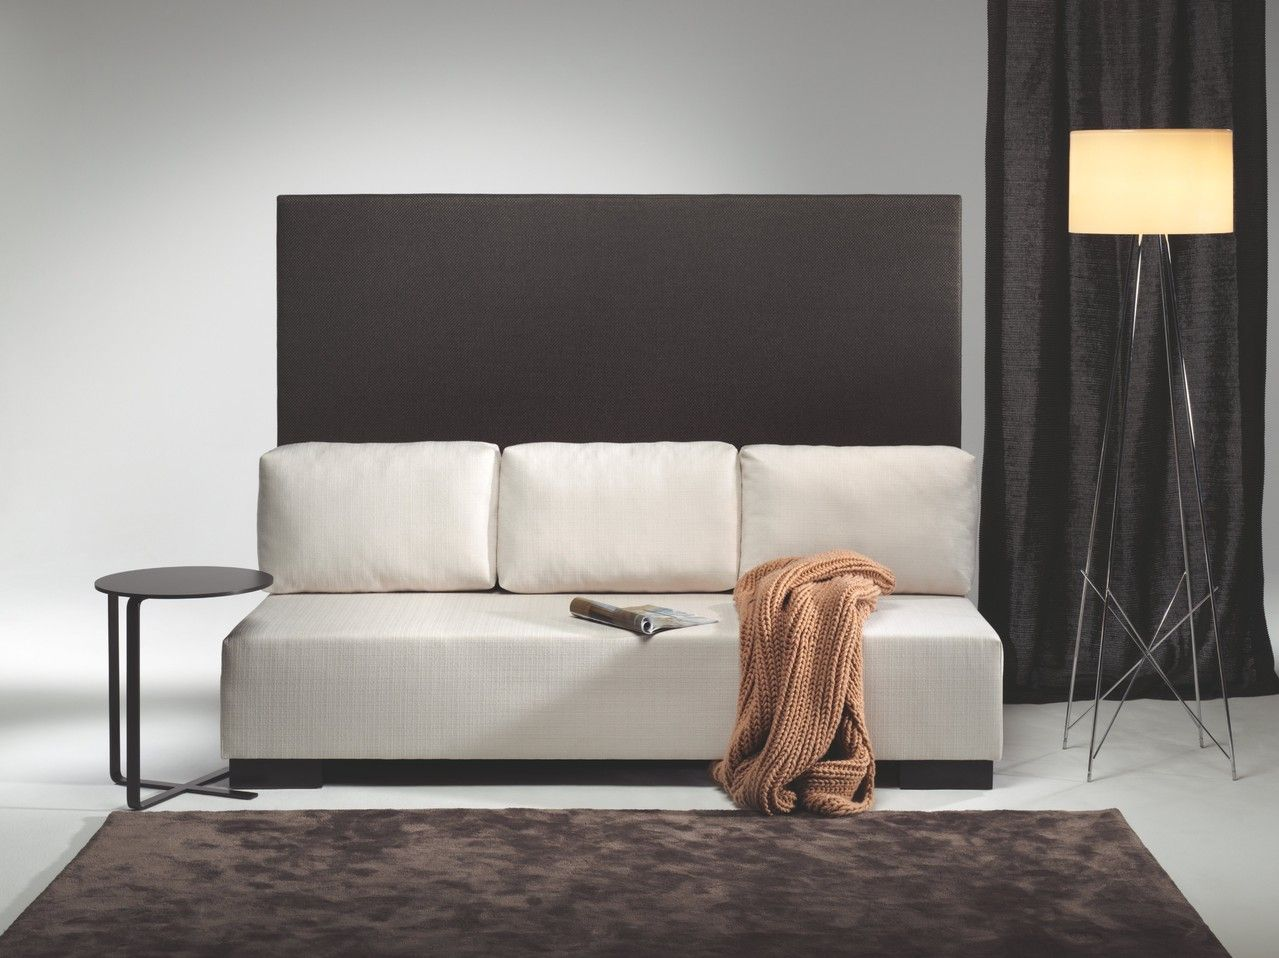 Bettsessel Design Click Home3 Schweizer Design Swiss Made Bettsessel Bettsofa